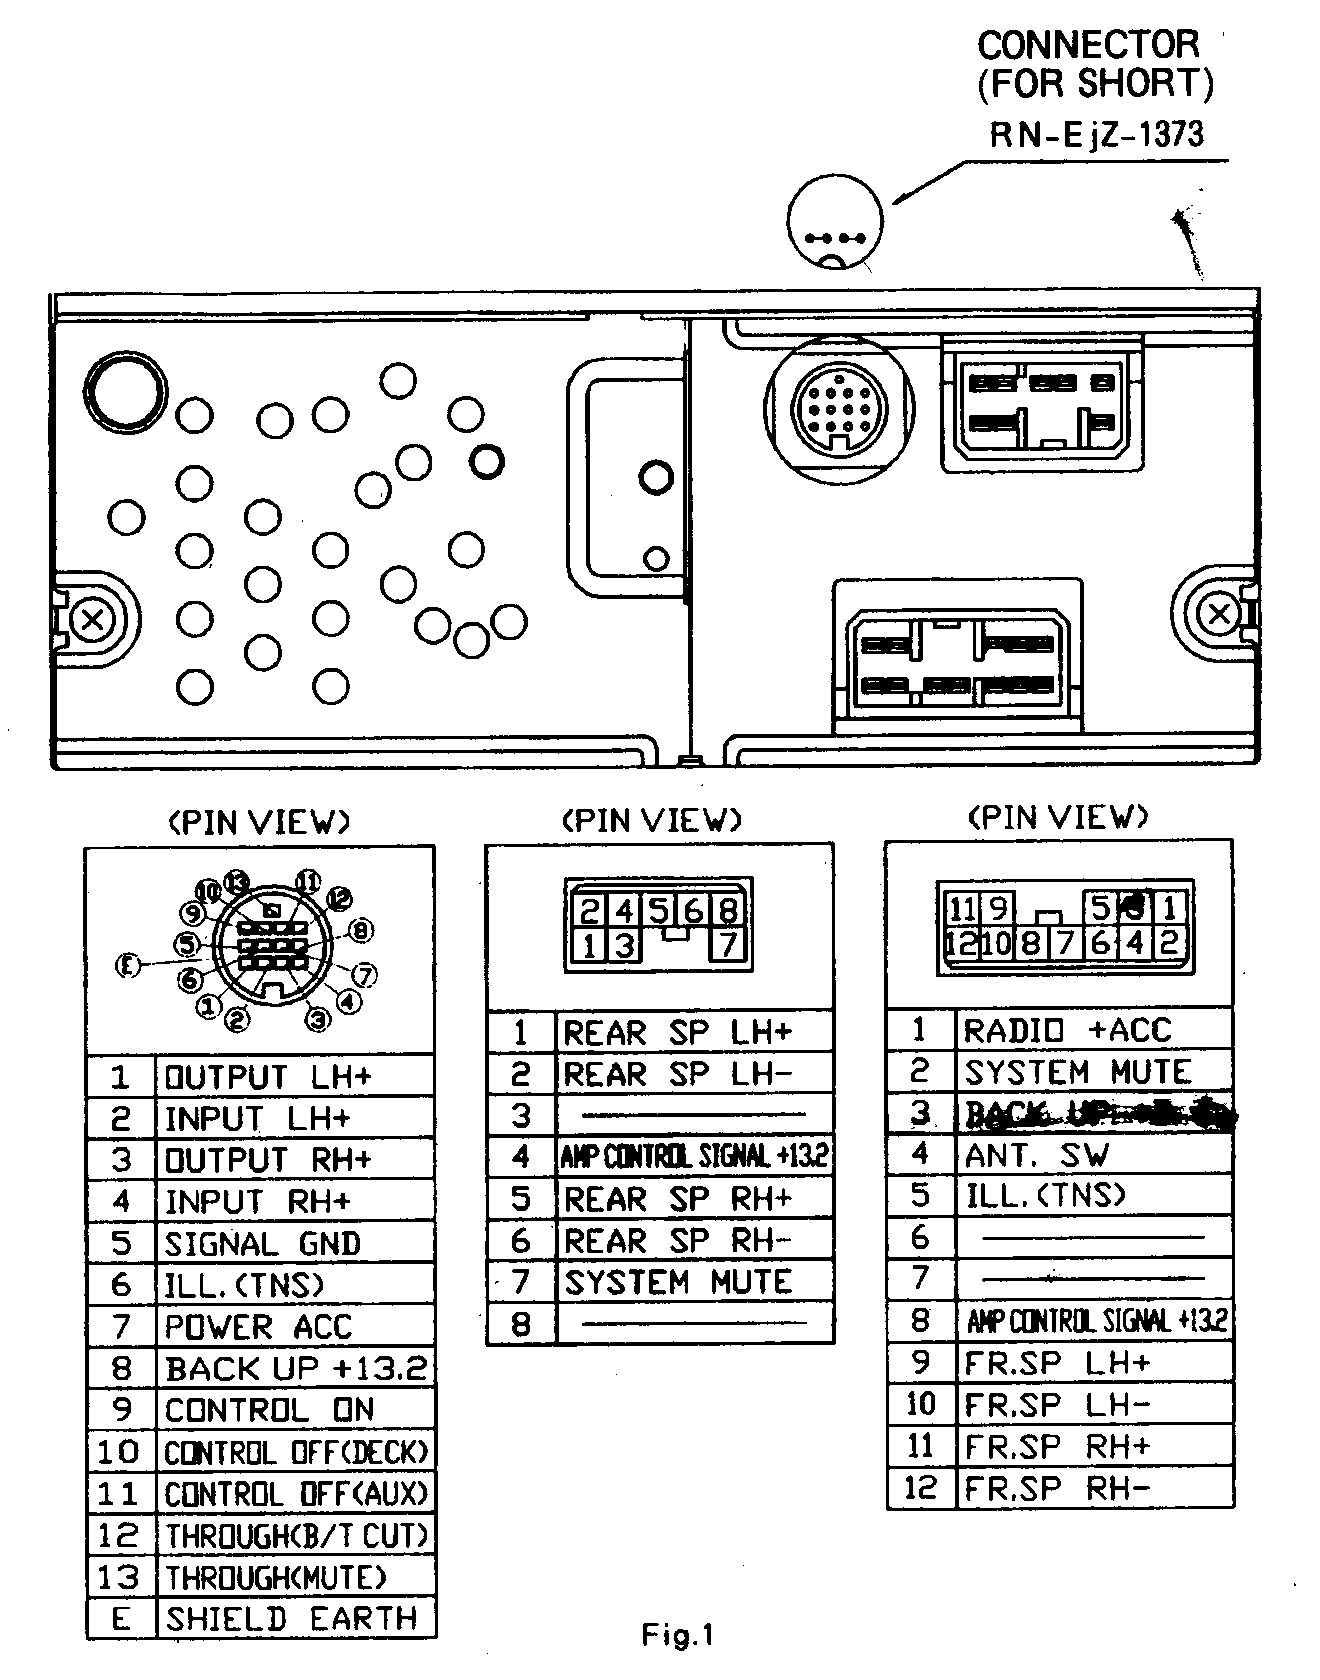 1993 Mazda Mx3 Stereo Wiring Diagram - Wiring Diagram and ...